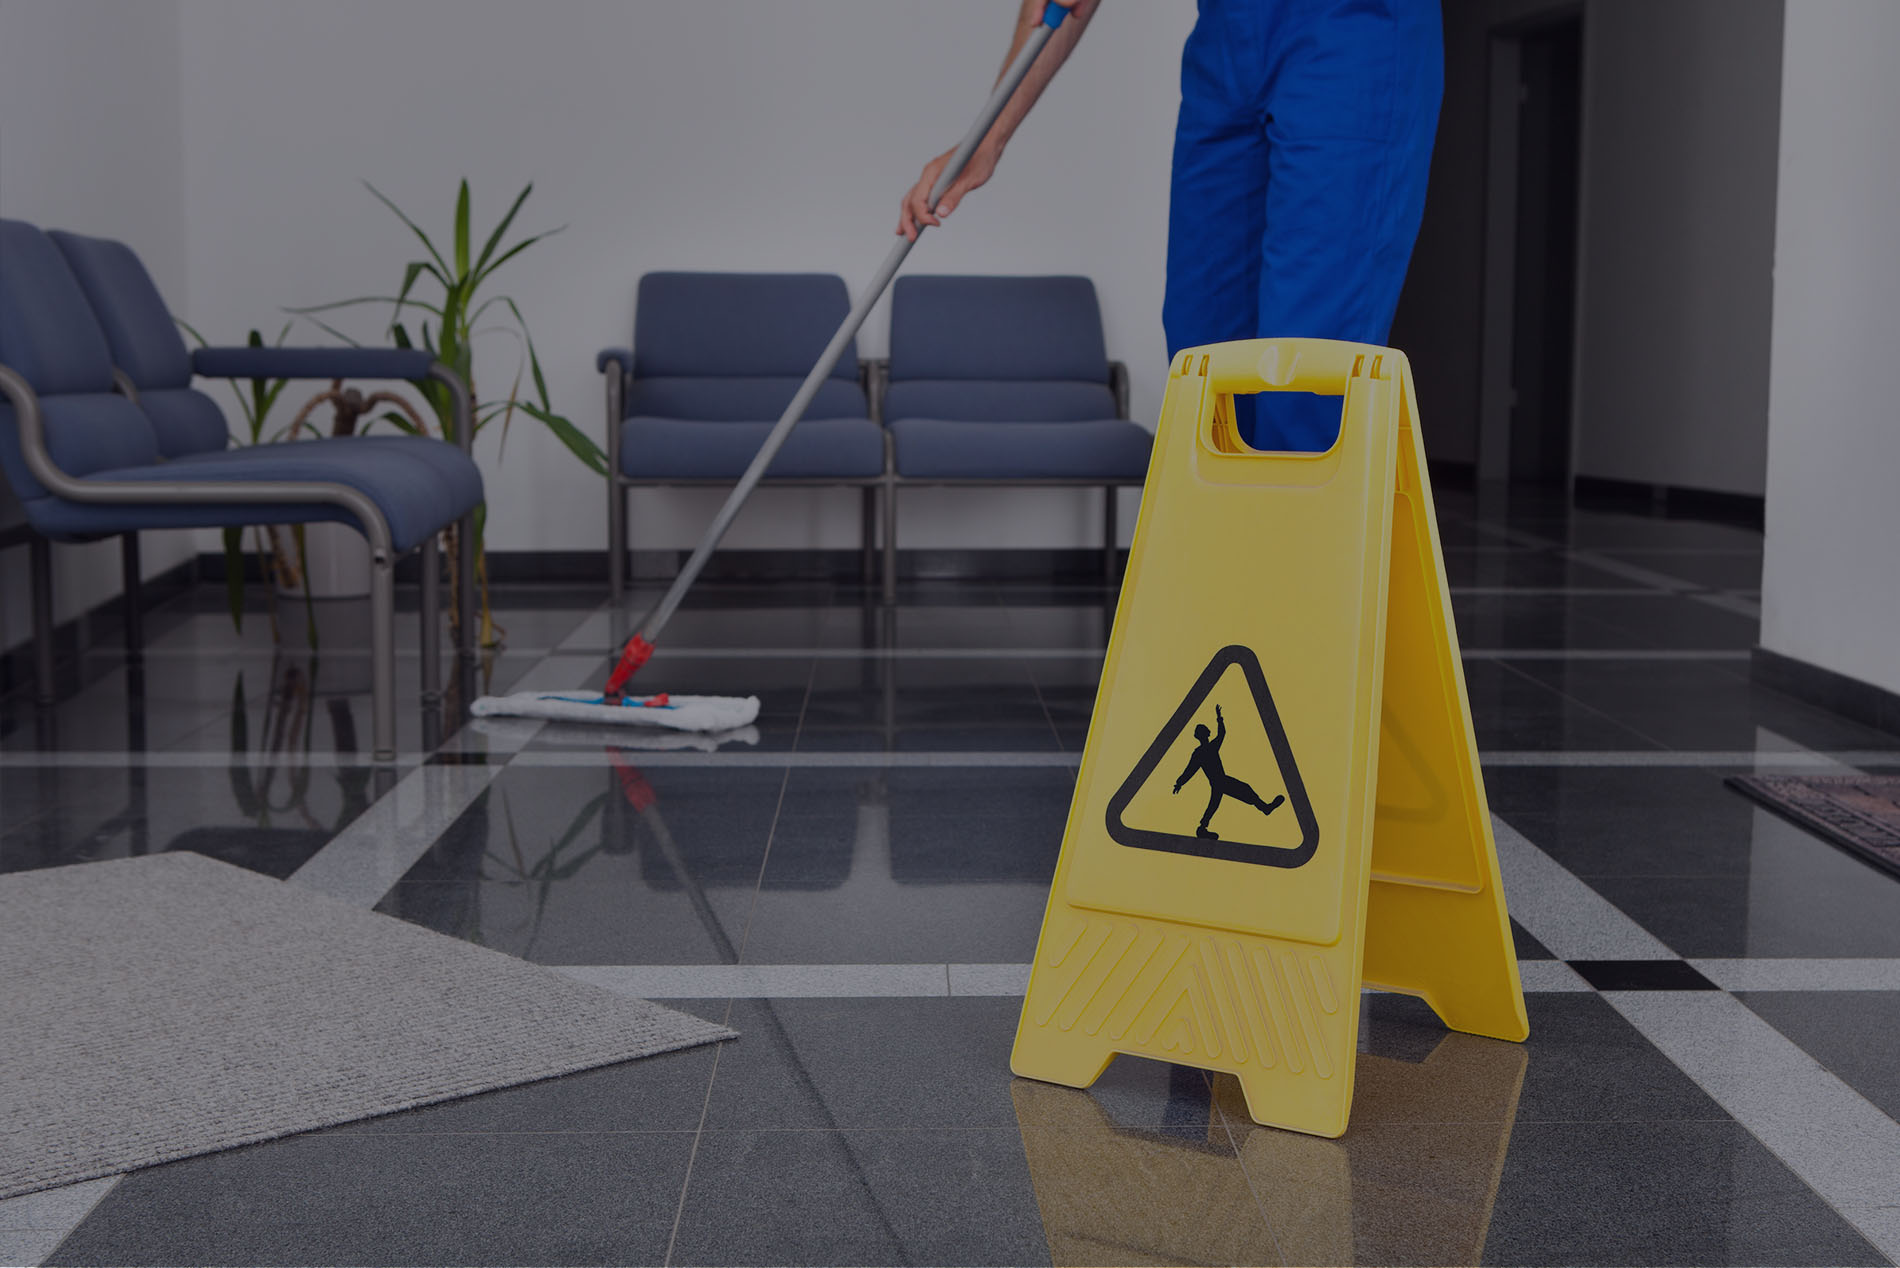 Business premises cleaning